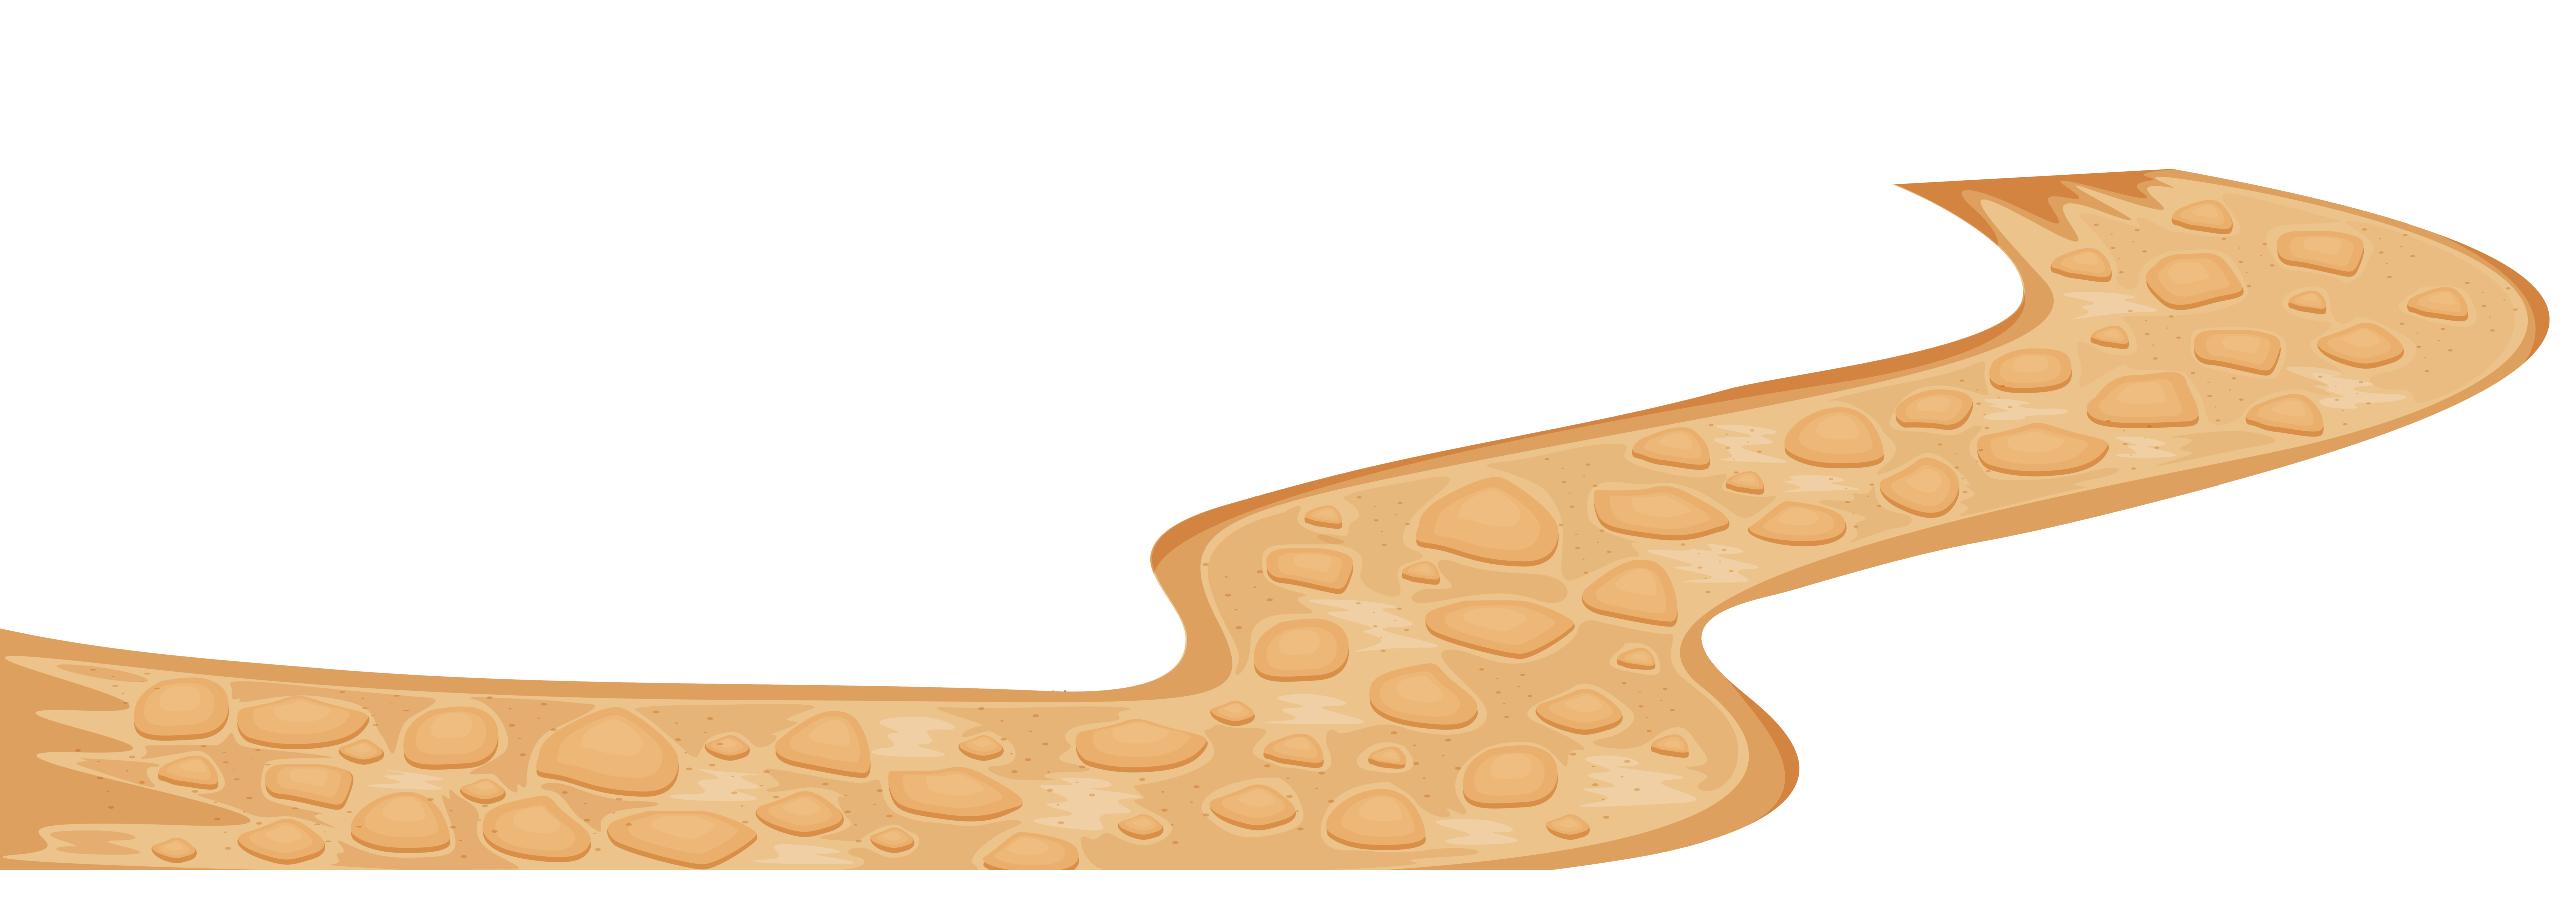 Pathway clipart dirt path. Free download clip art